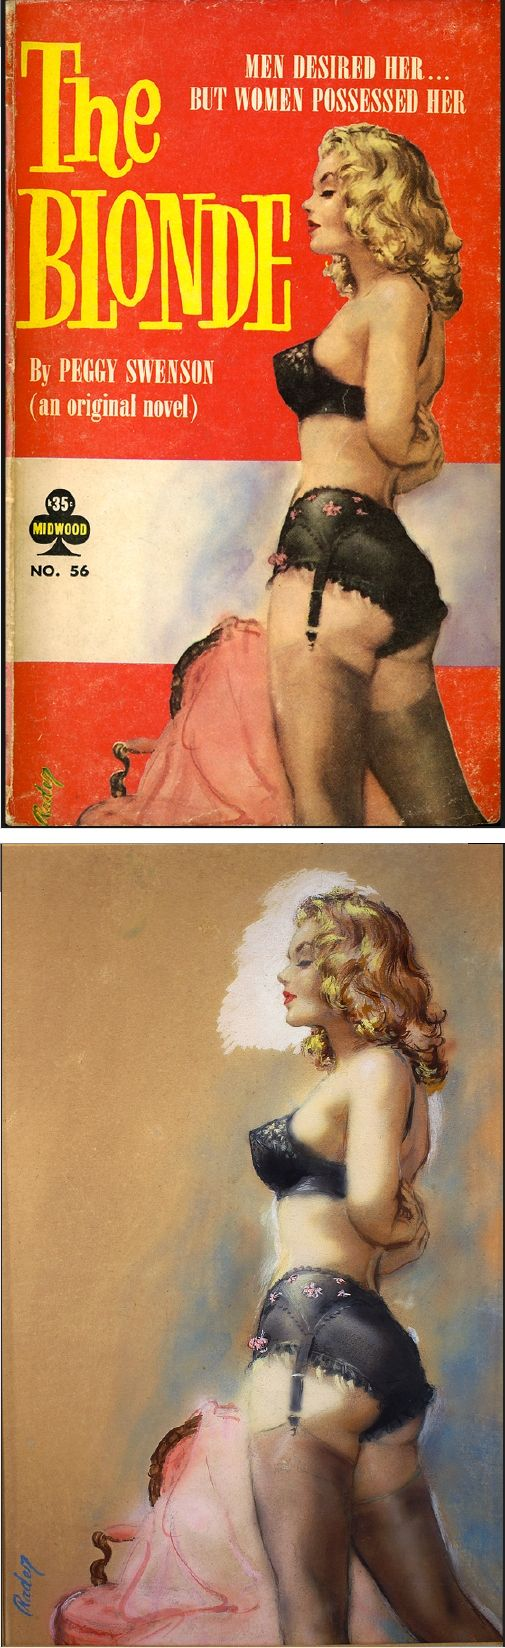 PAUL RADER - The Blonde by Peggy Swenson - 1960 Midwood 56 - cover by commons.wikimedia.org - print by Steve flickr